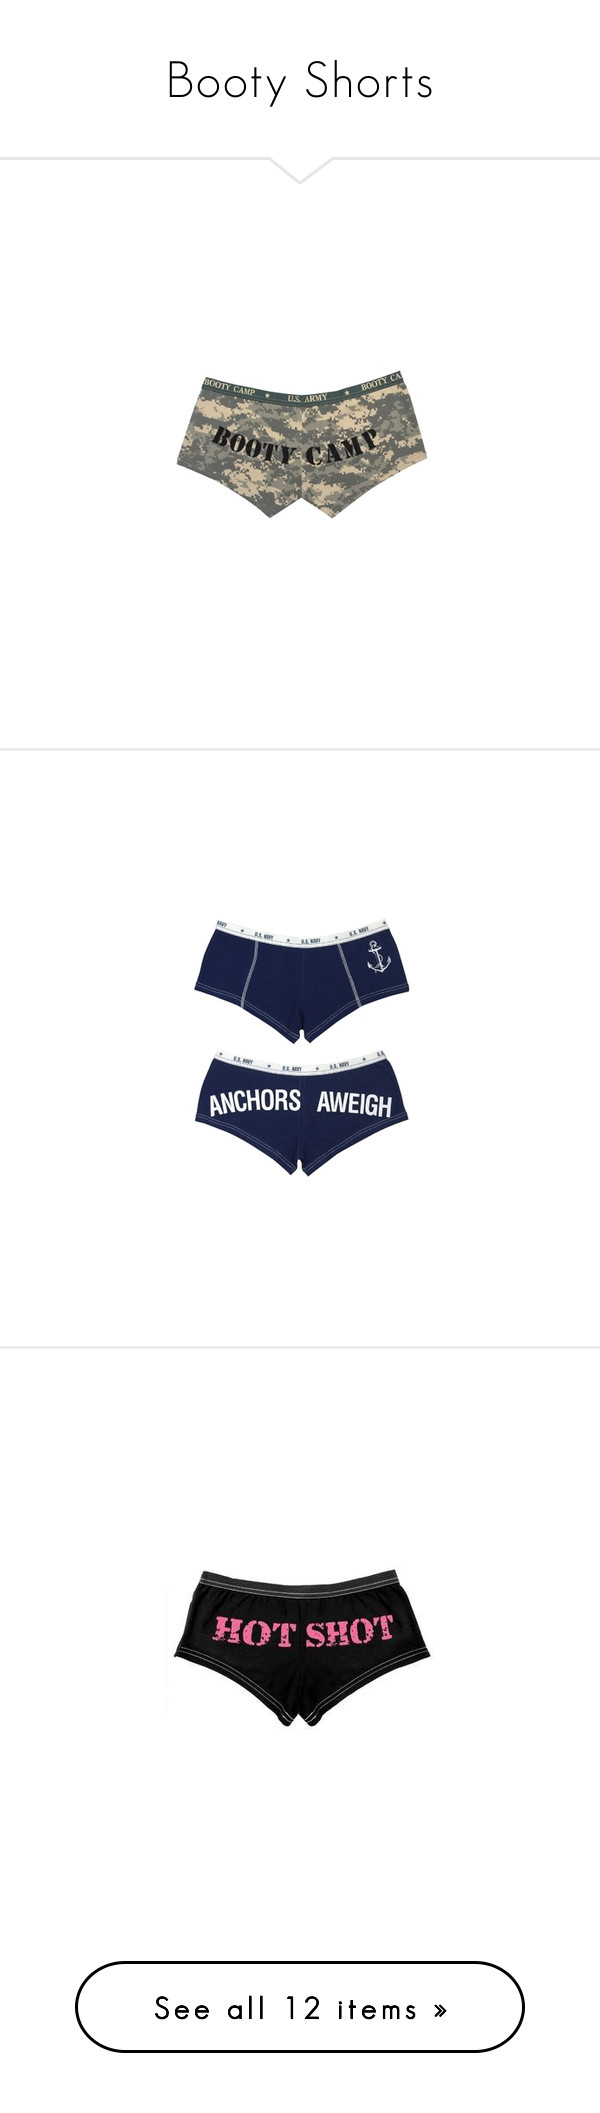 """""""Booty Shorts"""" by kyliee-moore ❤ liked on Polyvore featuring intimates, panties, underwear, shorts, clothes., underclothes, rothco, bottoms, lingerie and pants"""